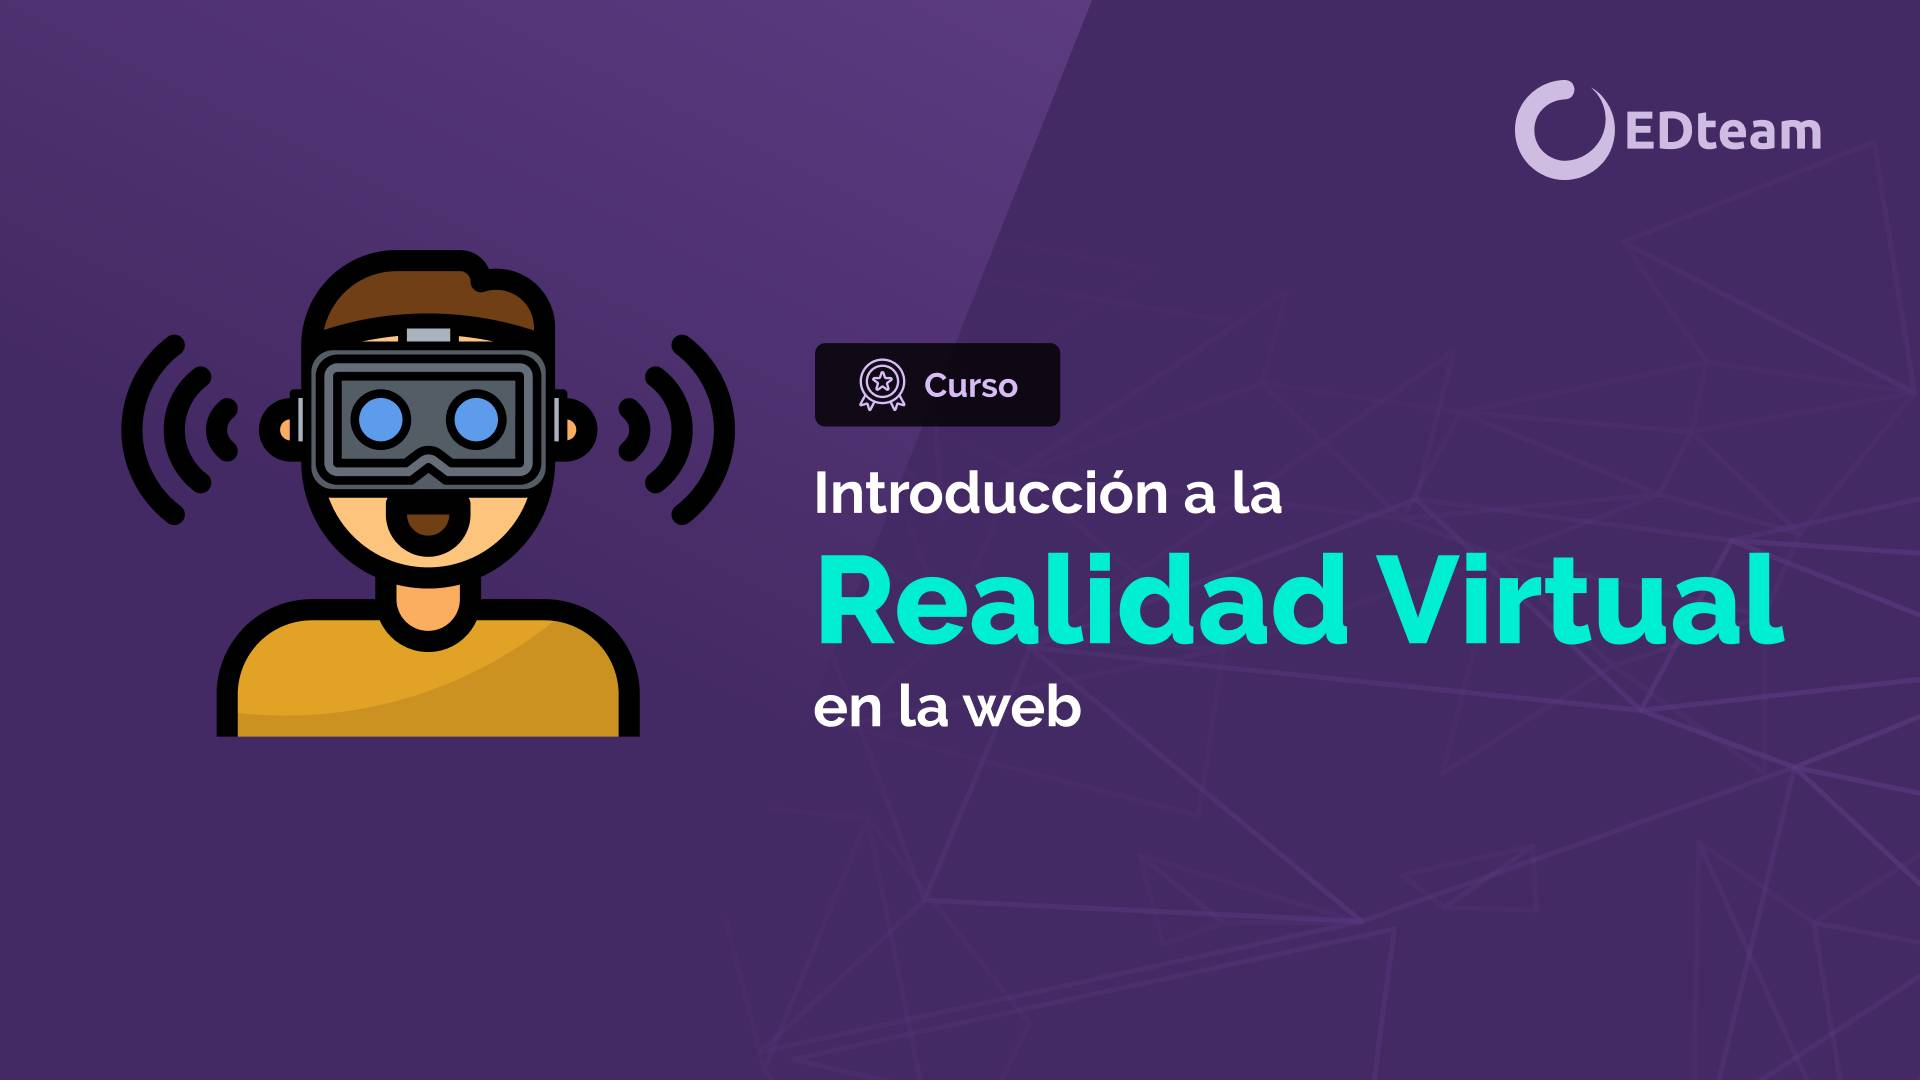 Introducción a la realidad virtual en la web